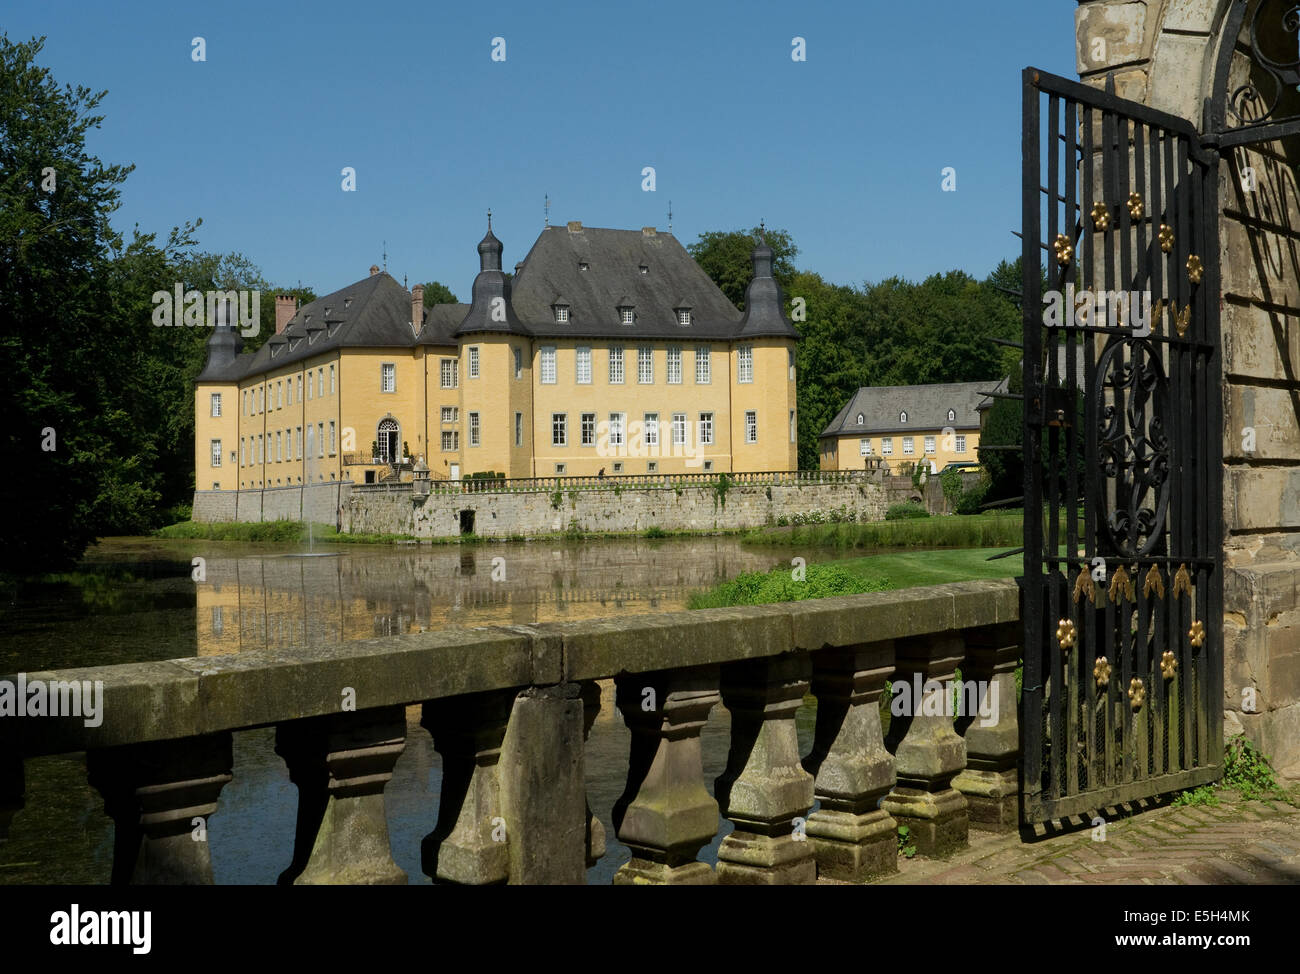 Schloss Dyck near Monchengladbach Germany - Stock Image